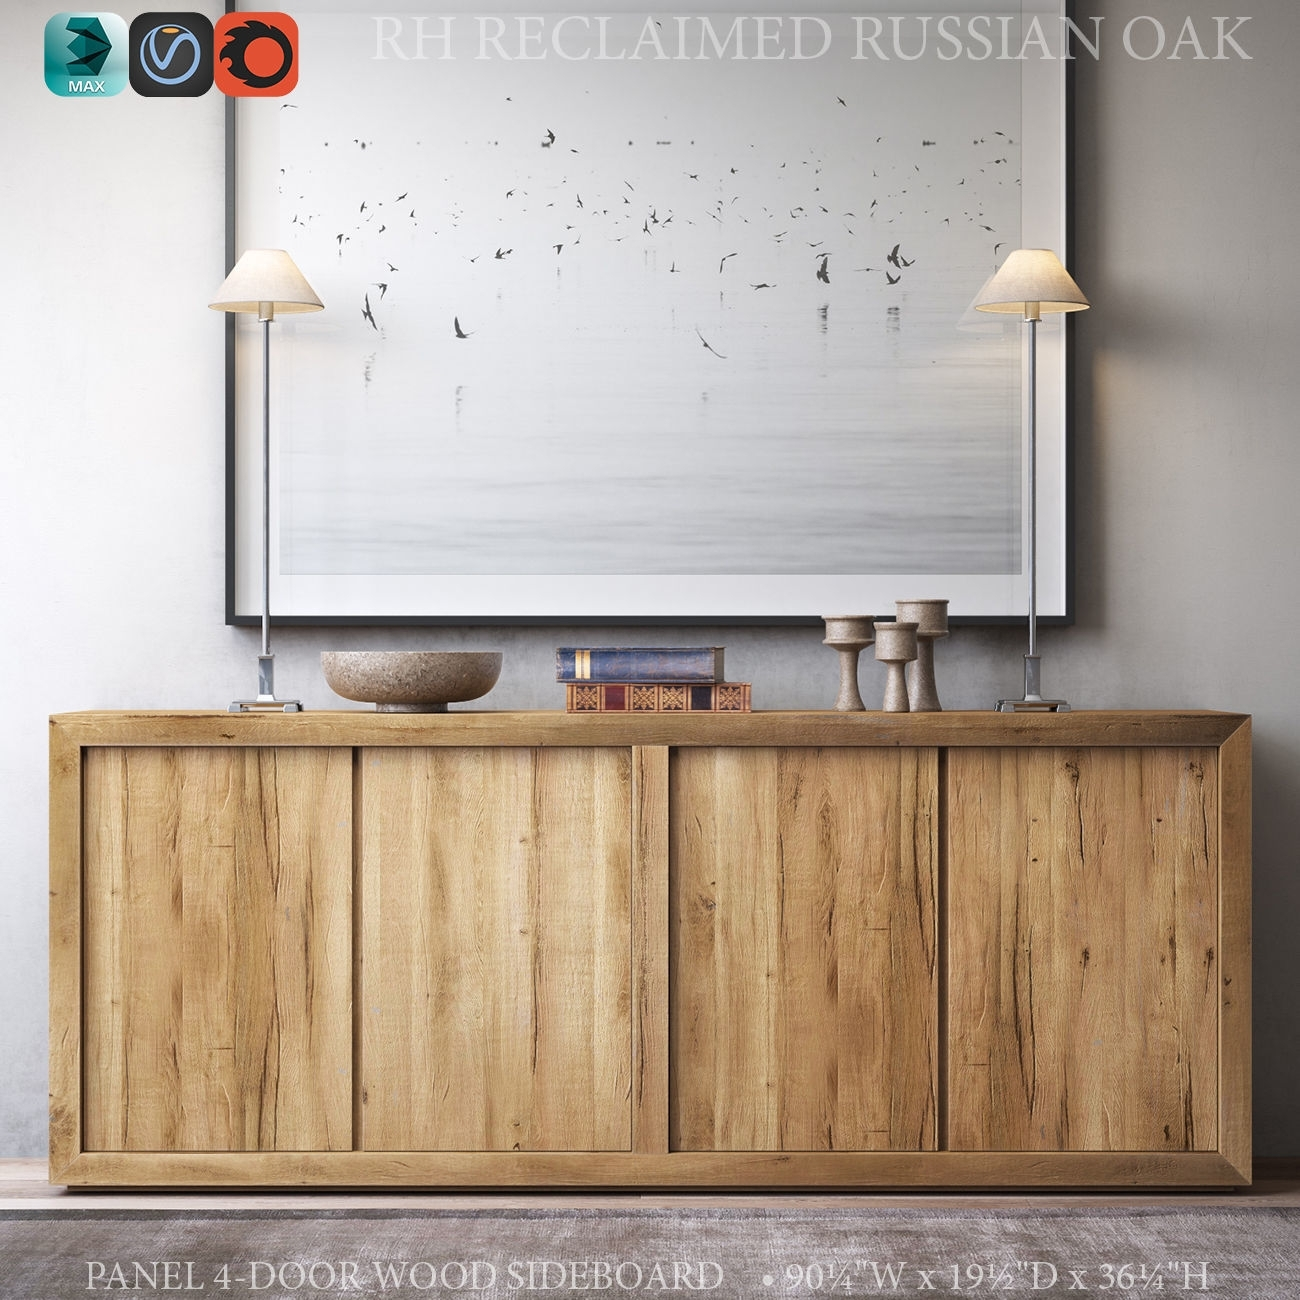 Reclaimed Russian Oak Panel 4-Door Wood Sideboard 3D Model Max Obj within Reclaimed Sideboards With Metal Panel (Image 16 of 30)